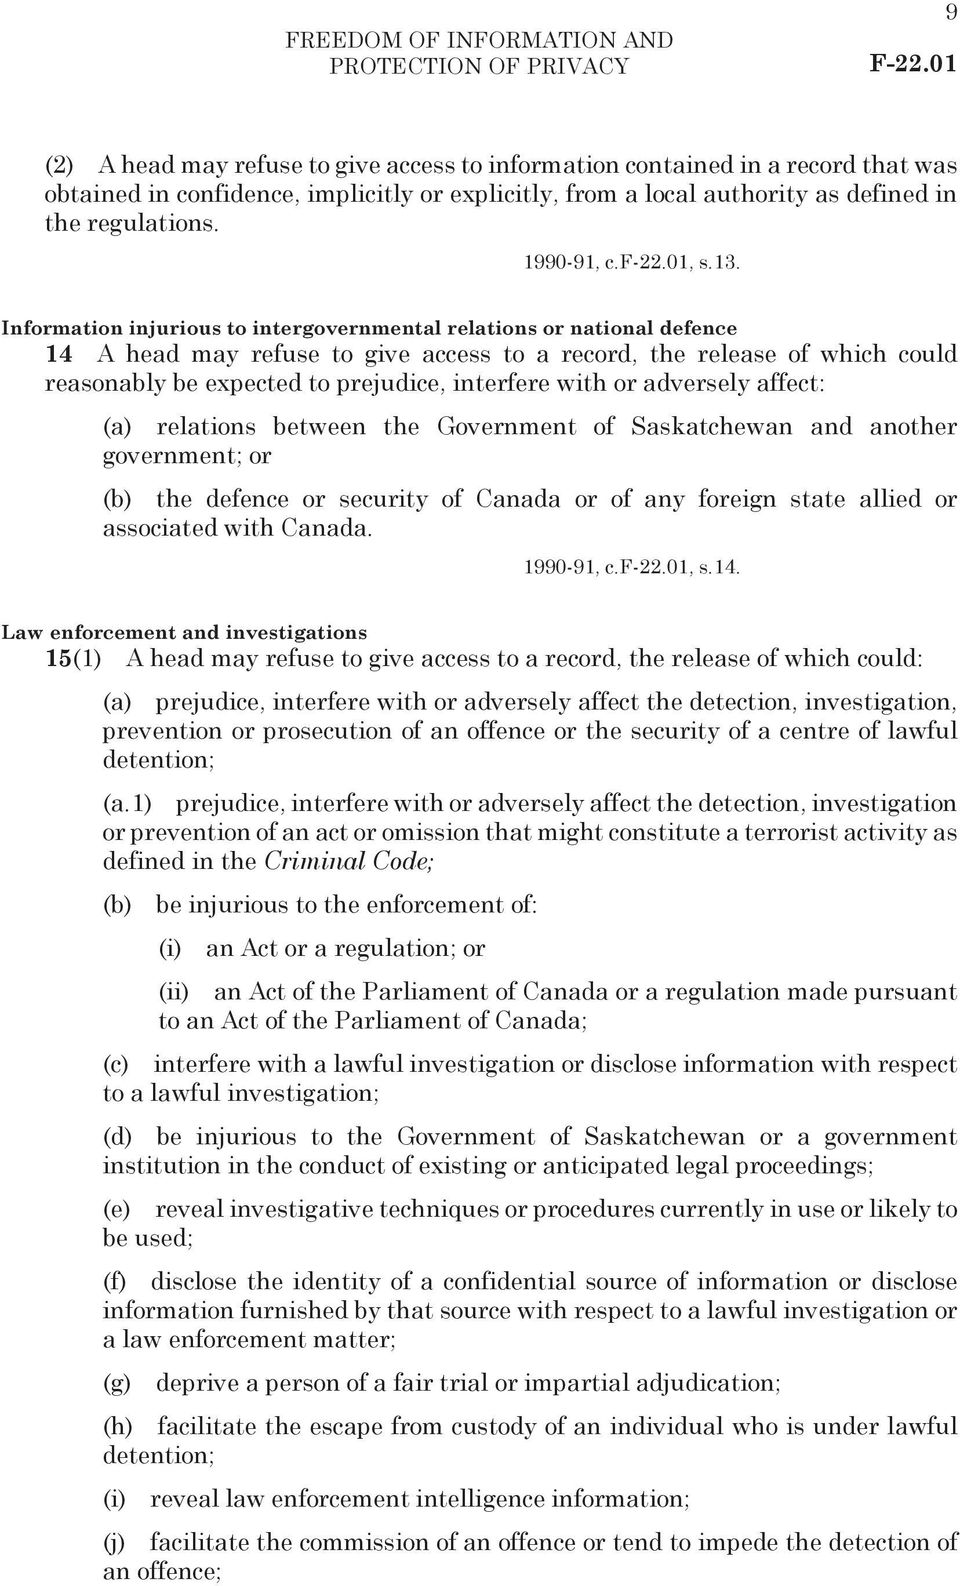 Information injurious to intergovernmental relations or national defence 14 A head may refuse to give access to a record, the release of which could reasonably be expected to prejudice, interfere